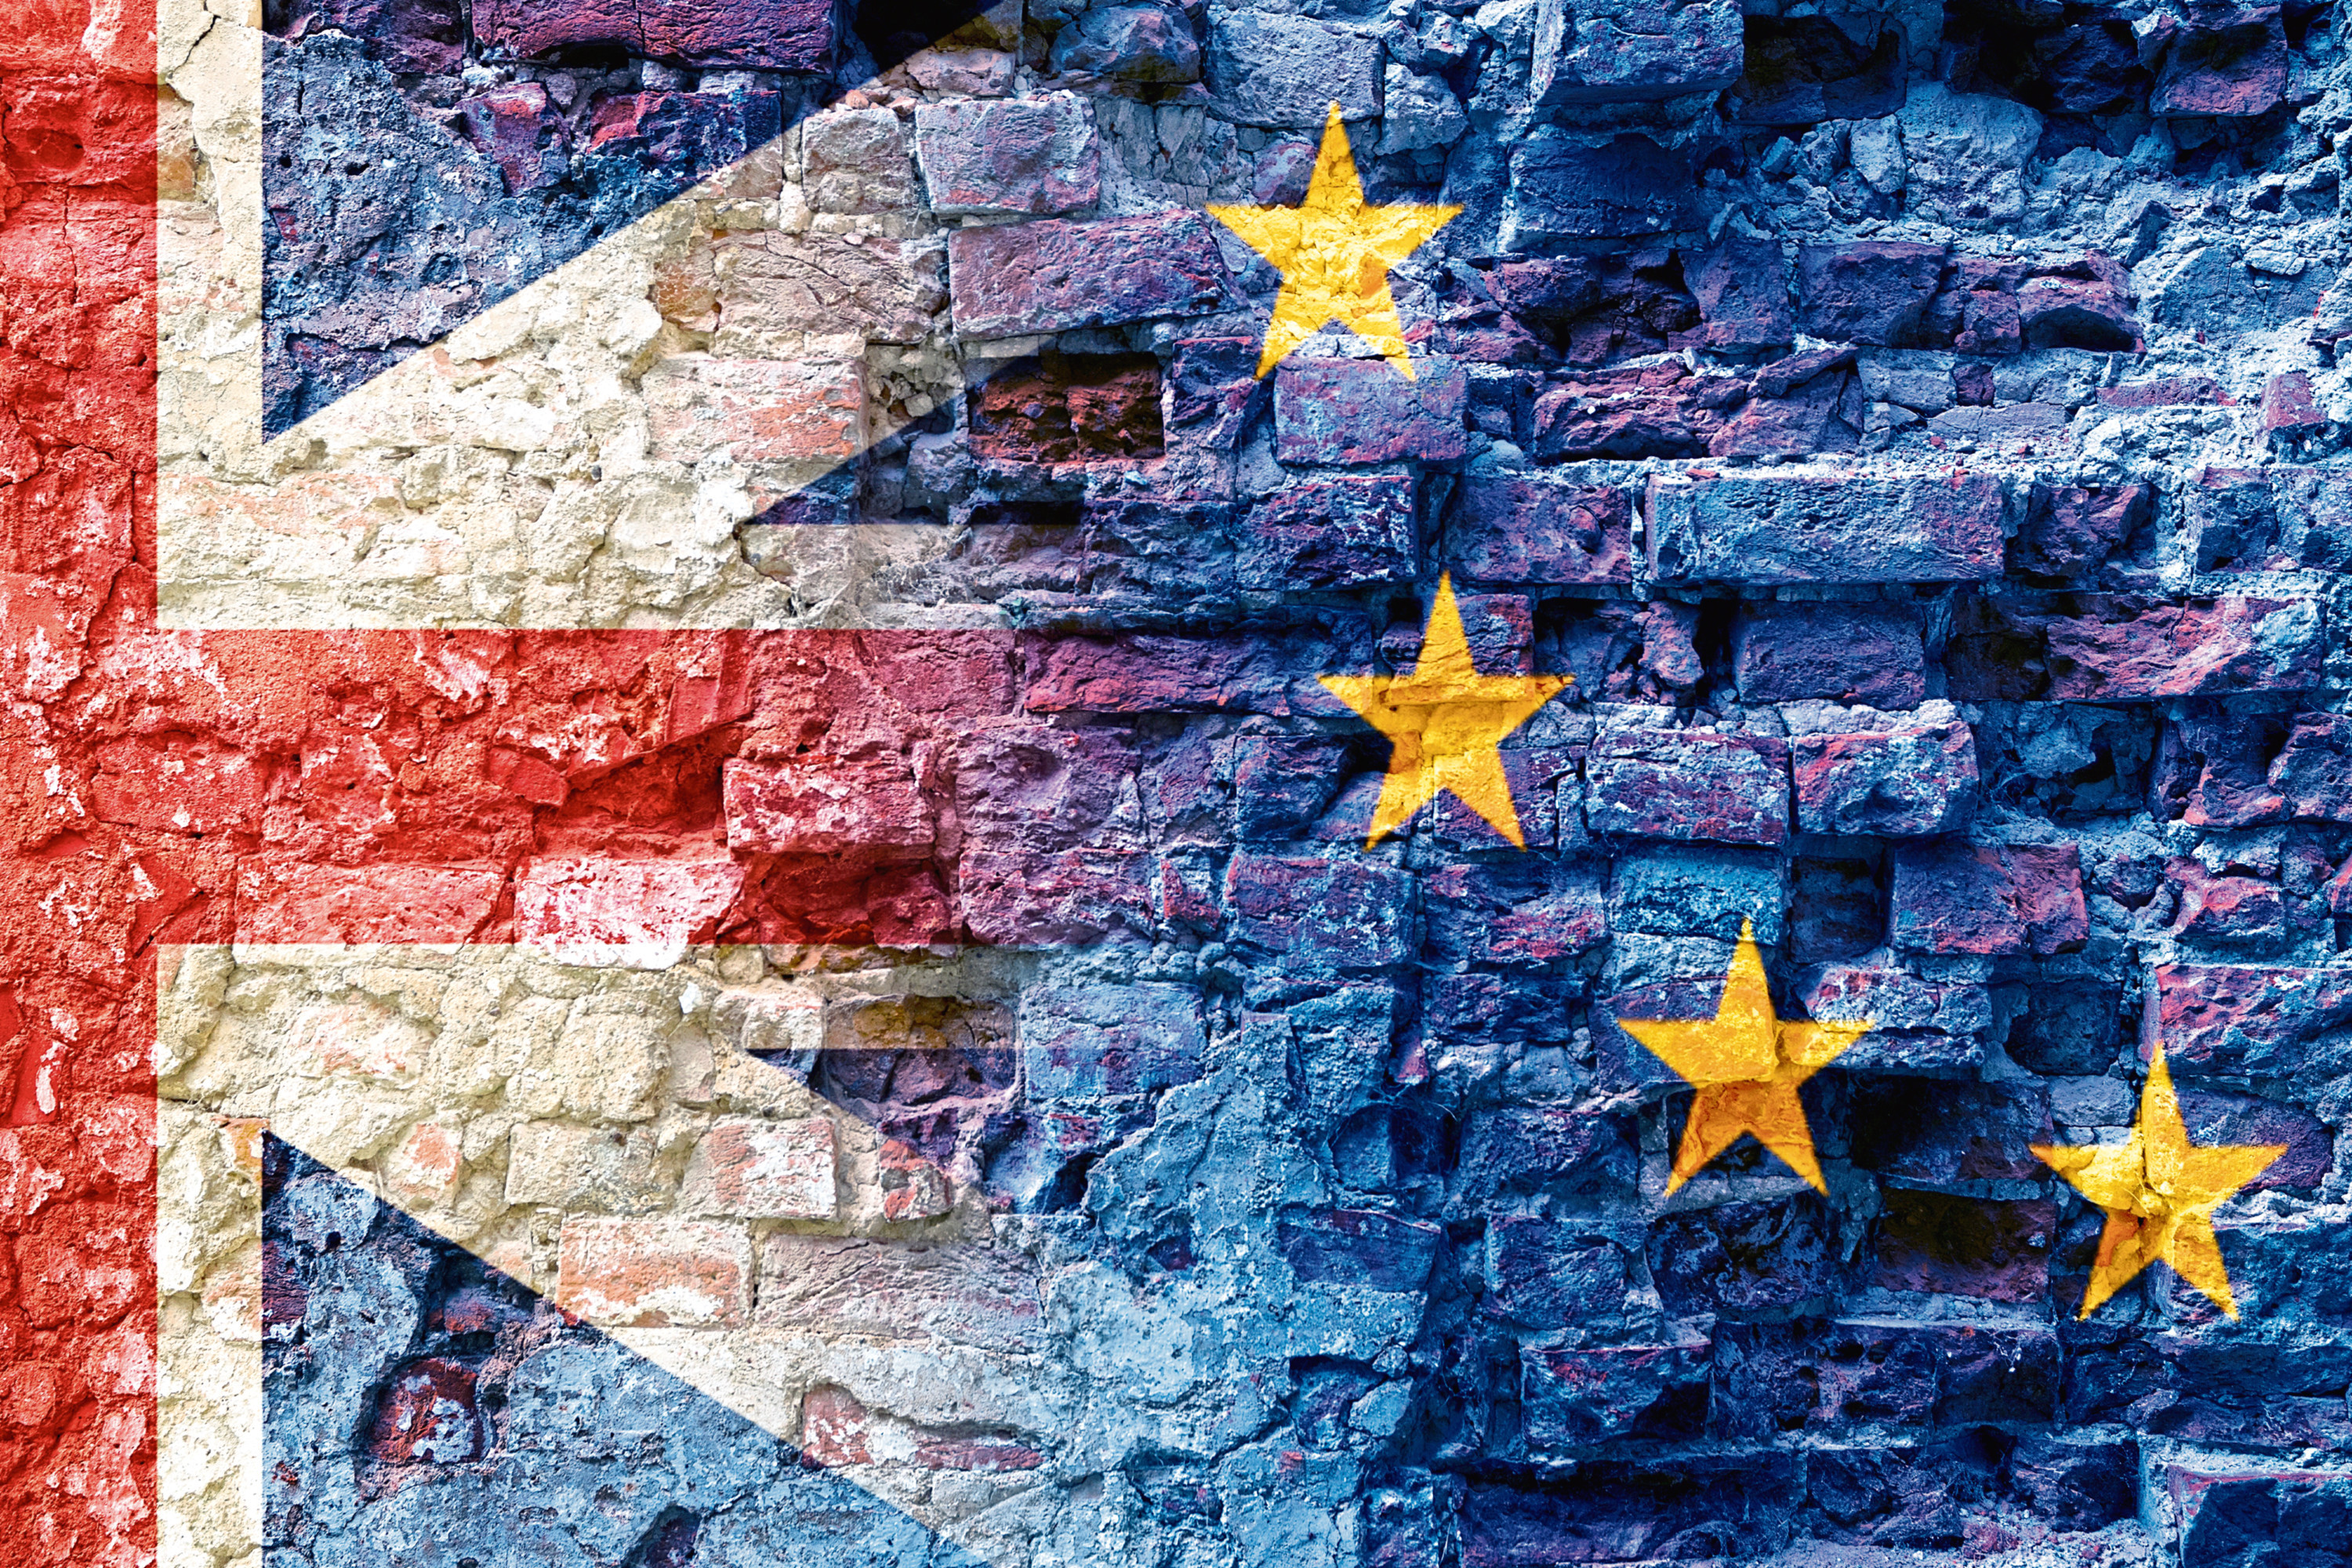 The Scottish Government is looking at ways to maintain the flow of essential goods as part of their no-deal planning.